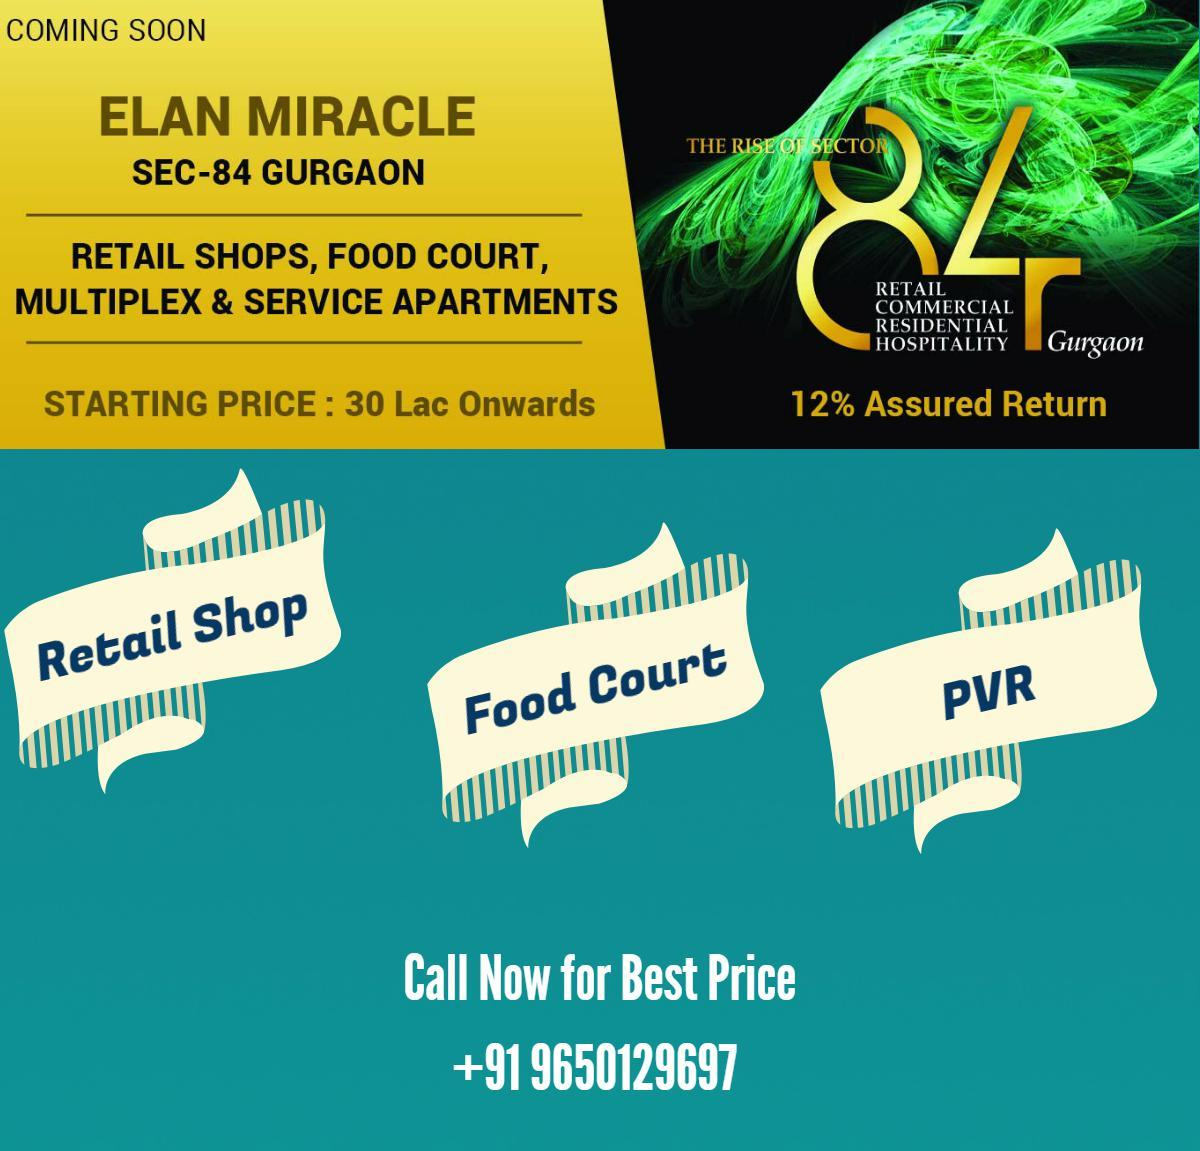 Elan Miracle sector 84 Gurgaon